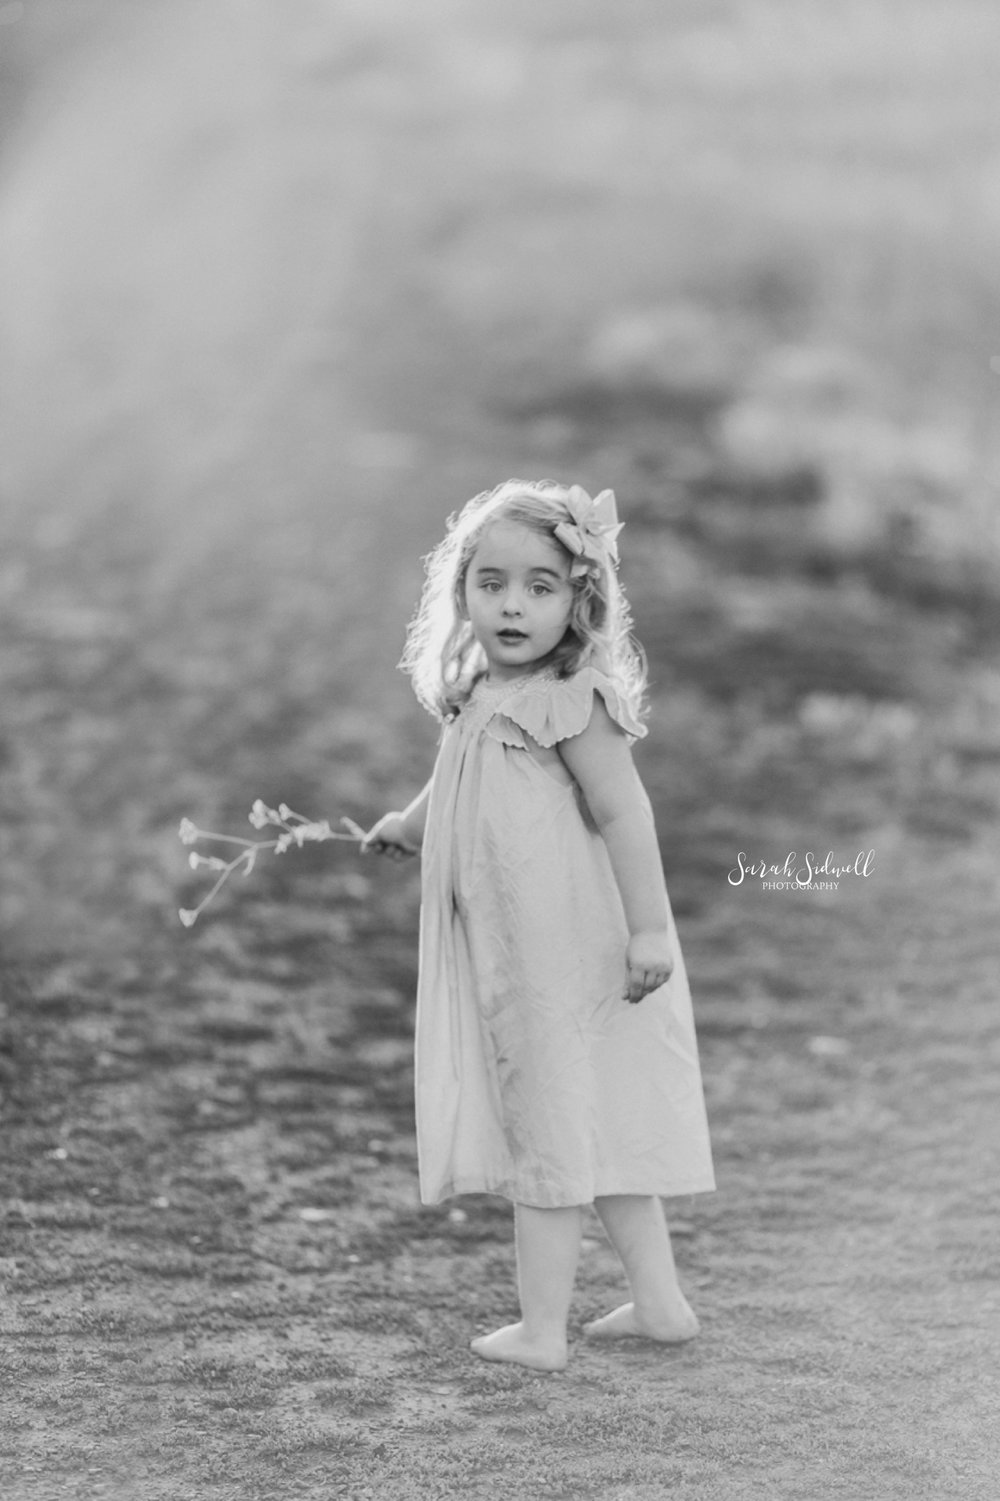 Sibling Session | Sarah Sidwell Photography